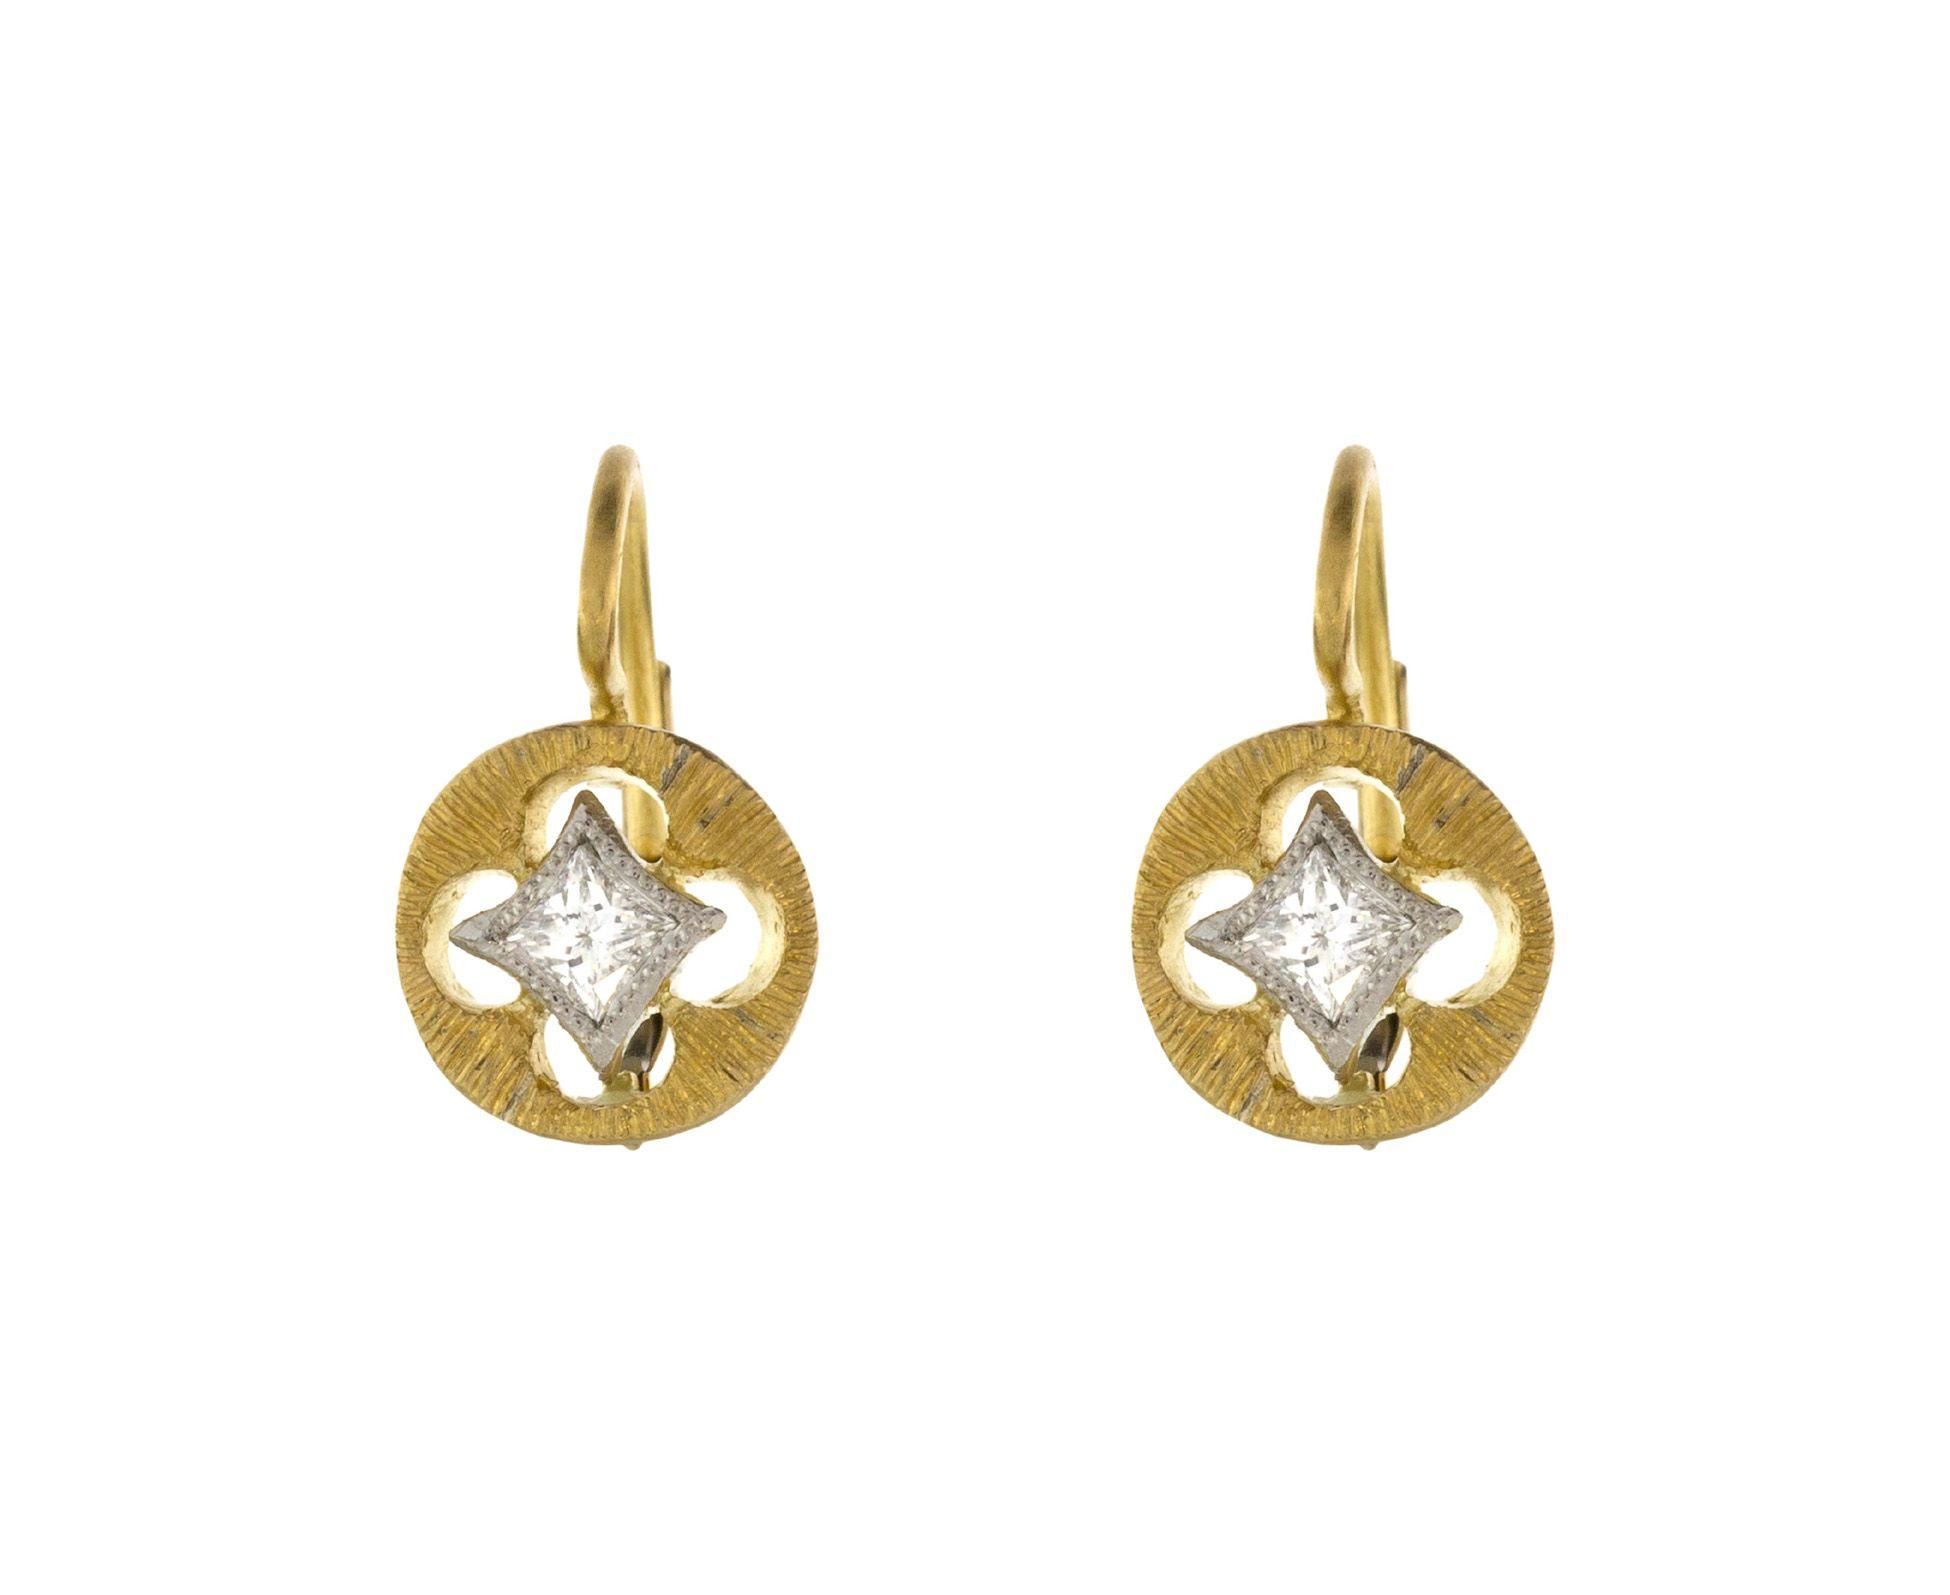 Cathy Waterman Floating Diamond Earrings In Designers At Twistonline